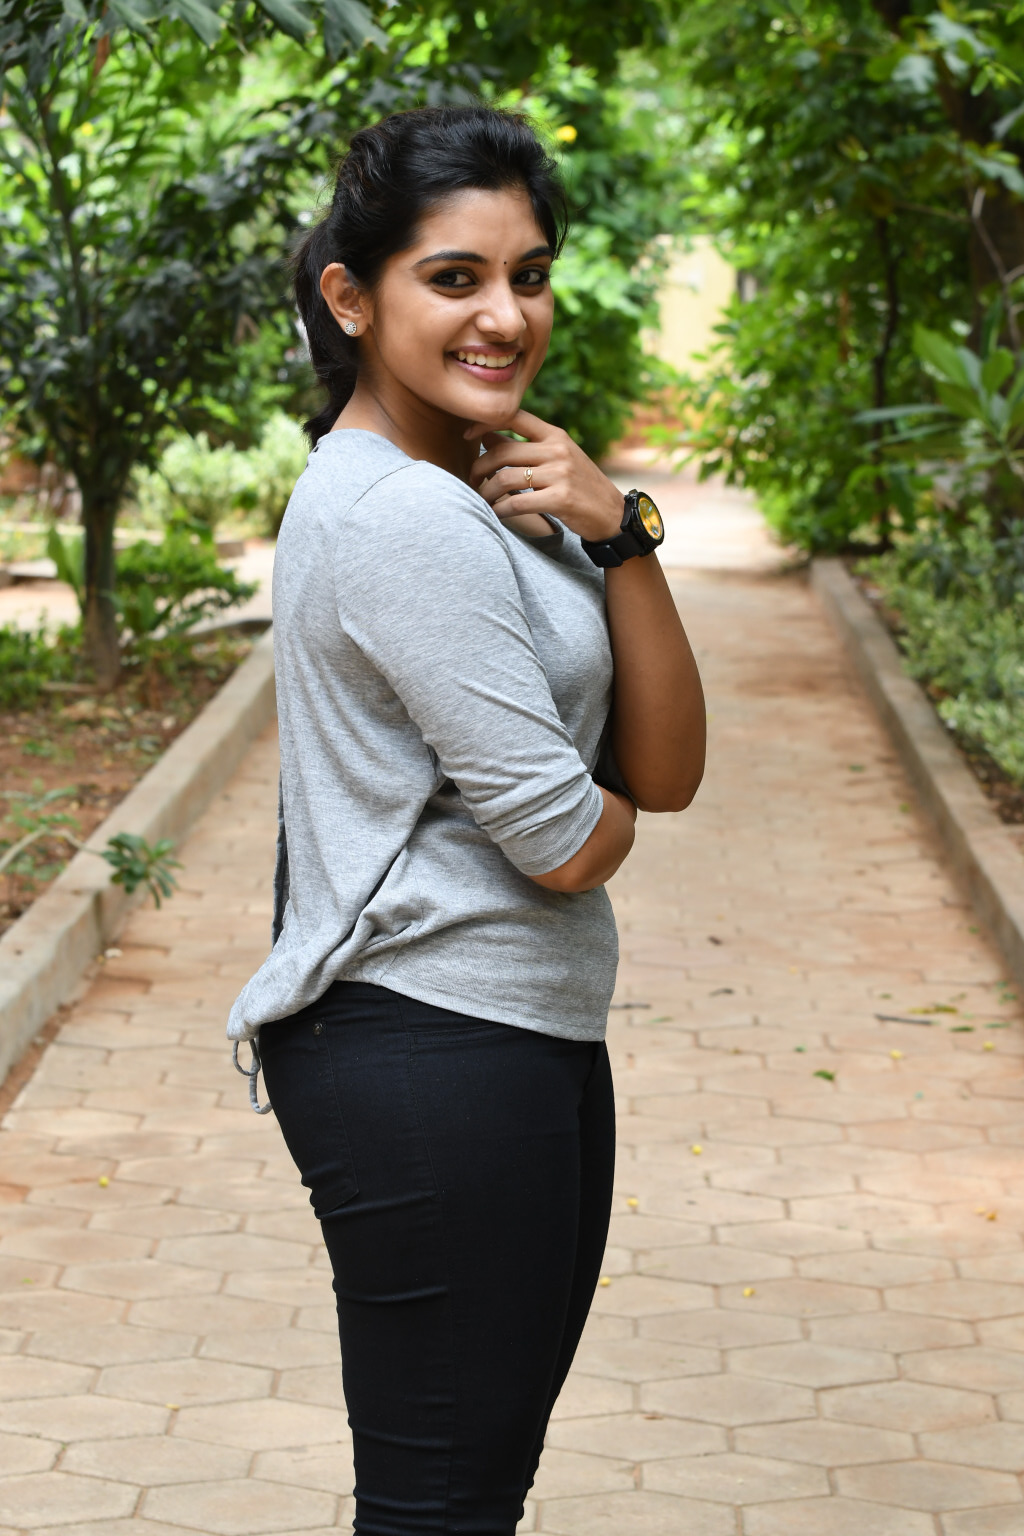 Nivetha Thomas backside pose picture